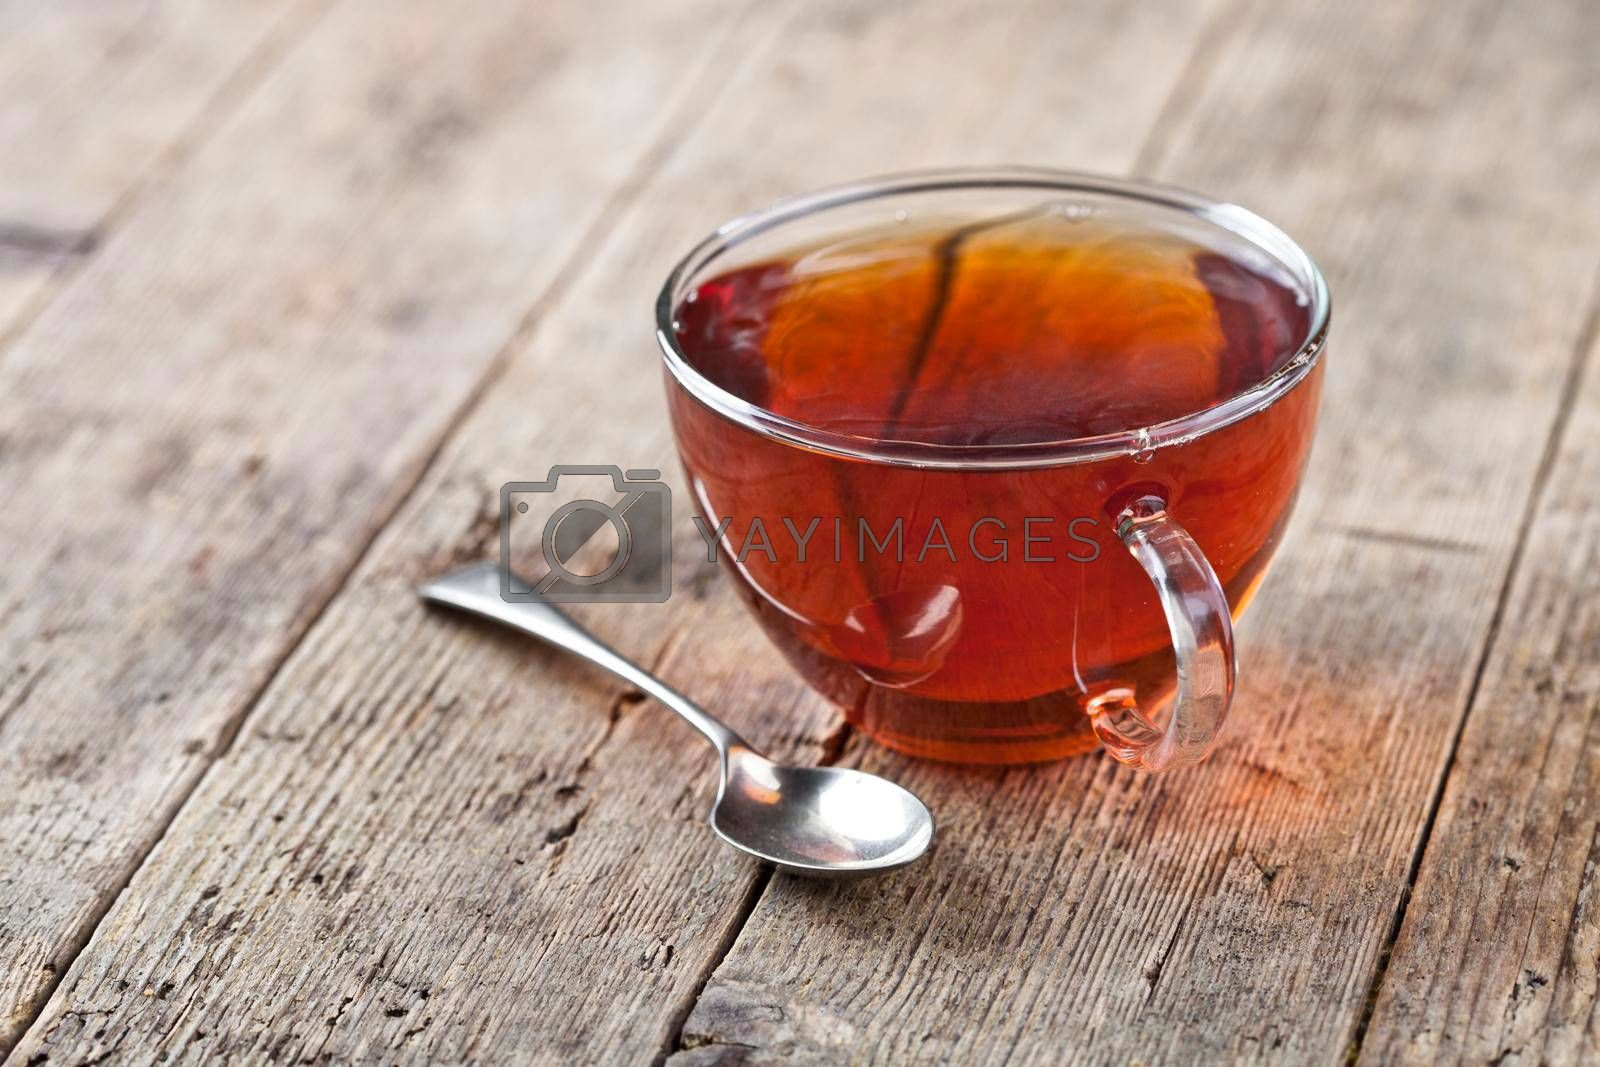 Cup of fresh tea and vintage spoon on rustic wooden table background. Transparent tea cup.